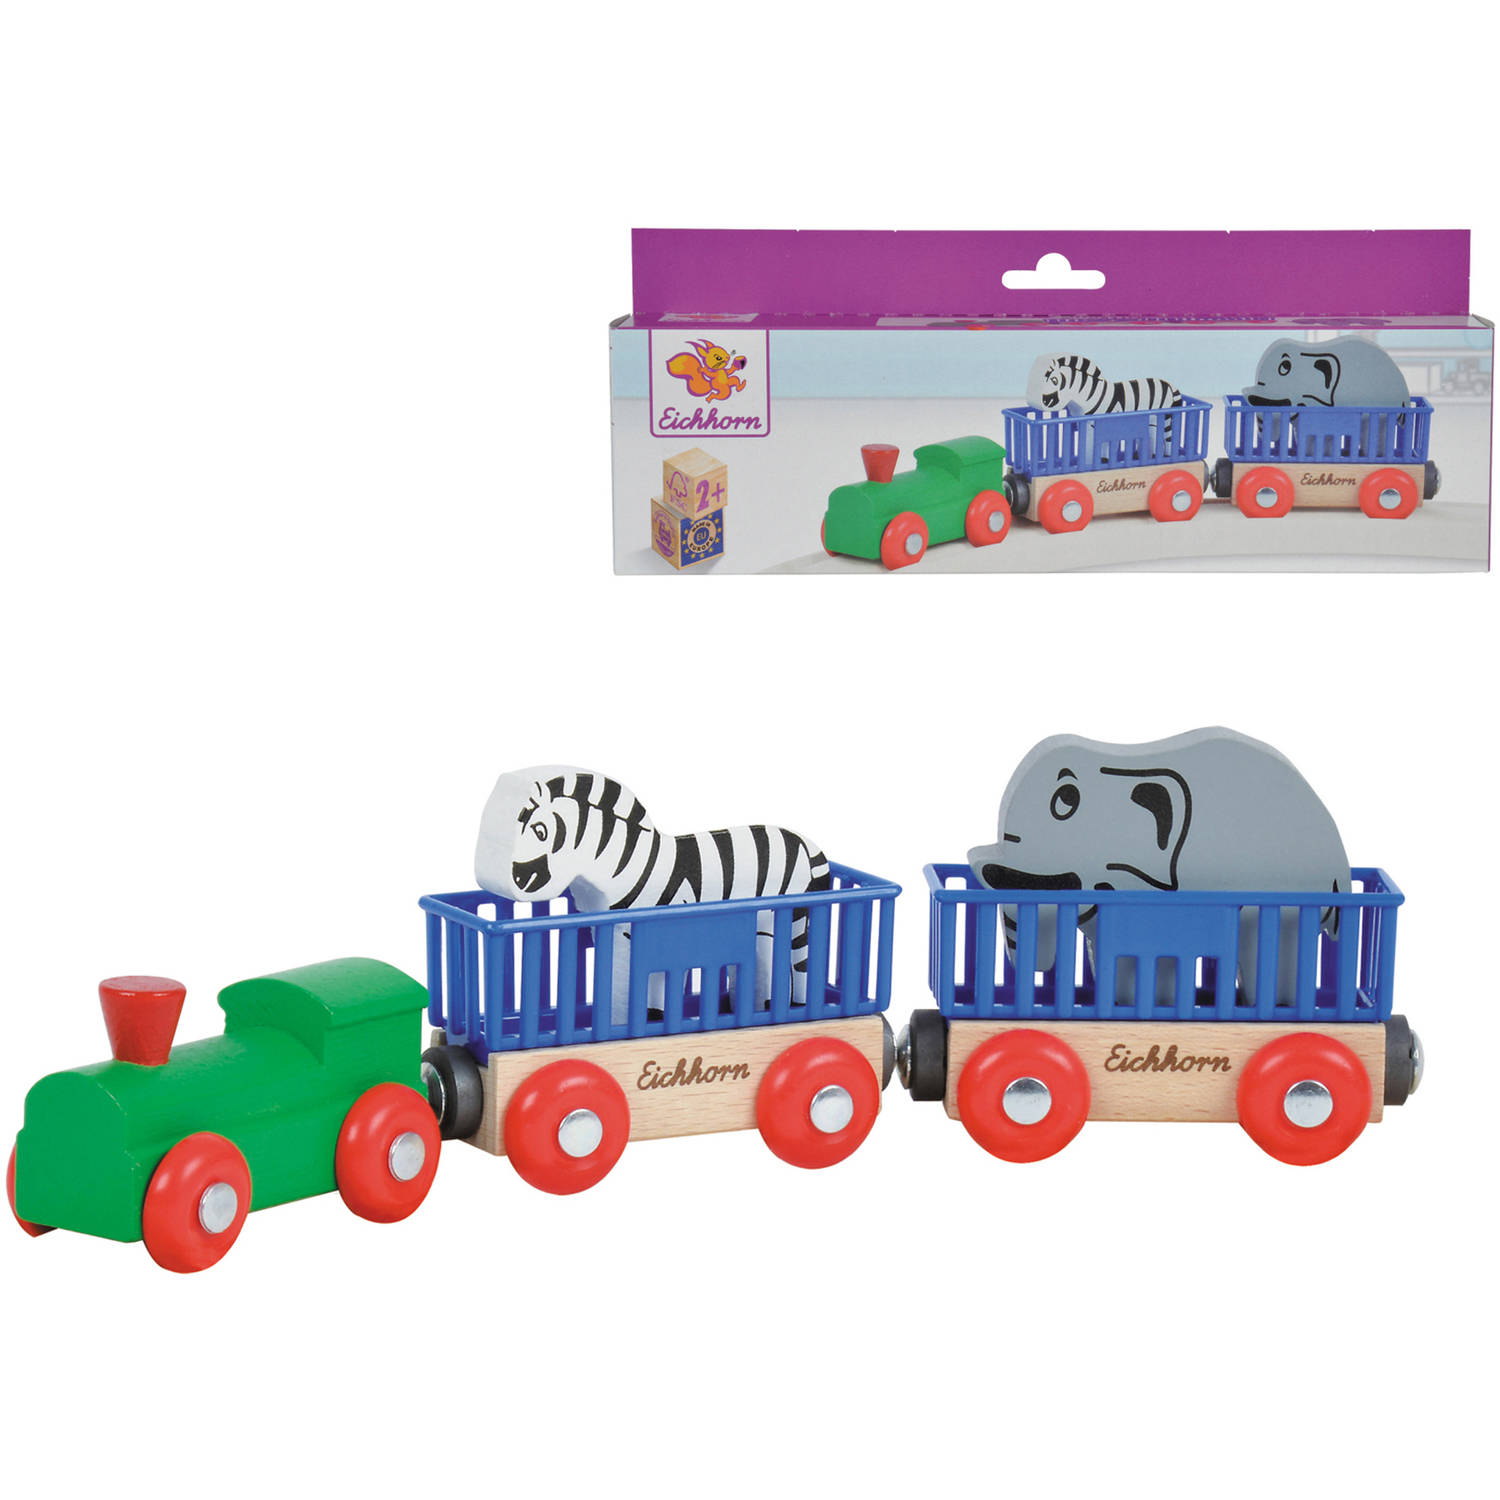 Eichhorn Train Wooden Animal Train Cars